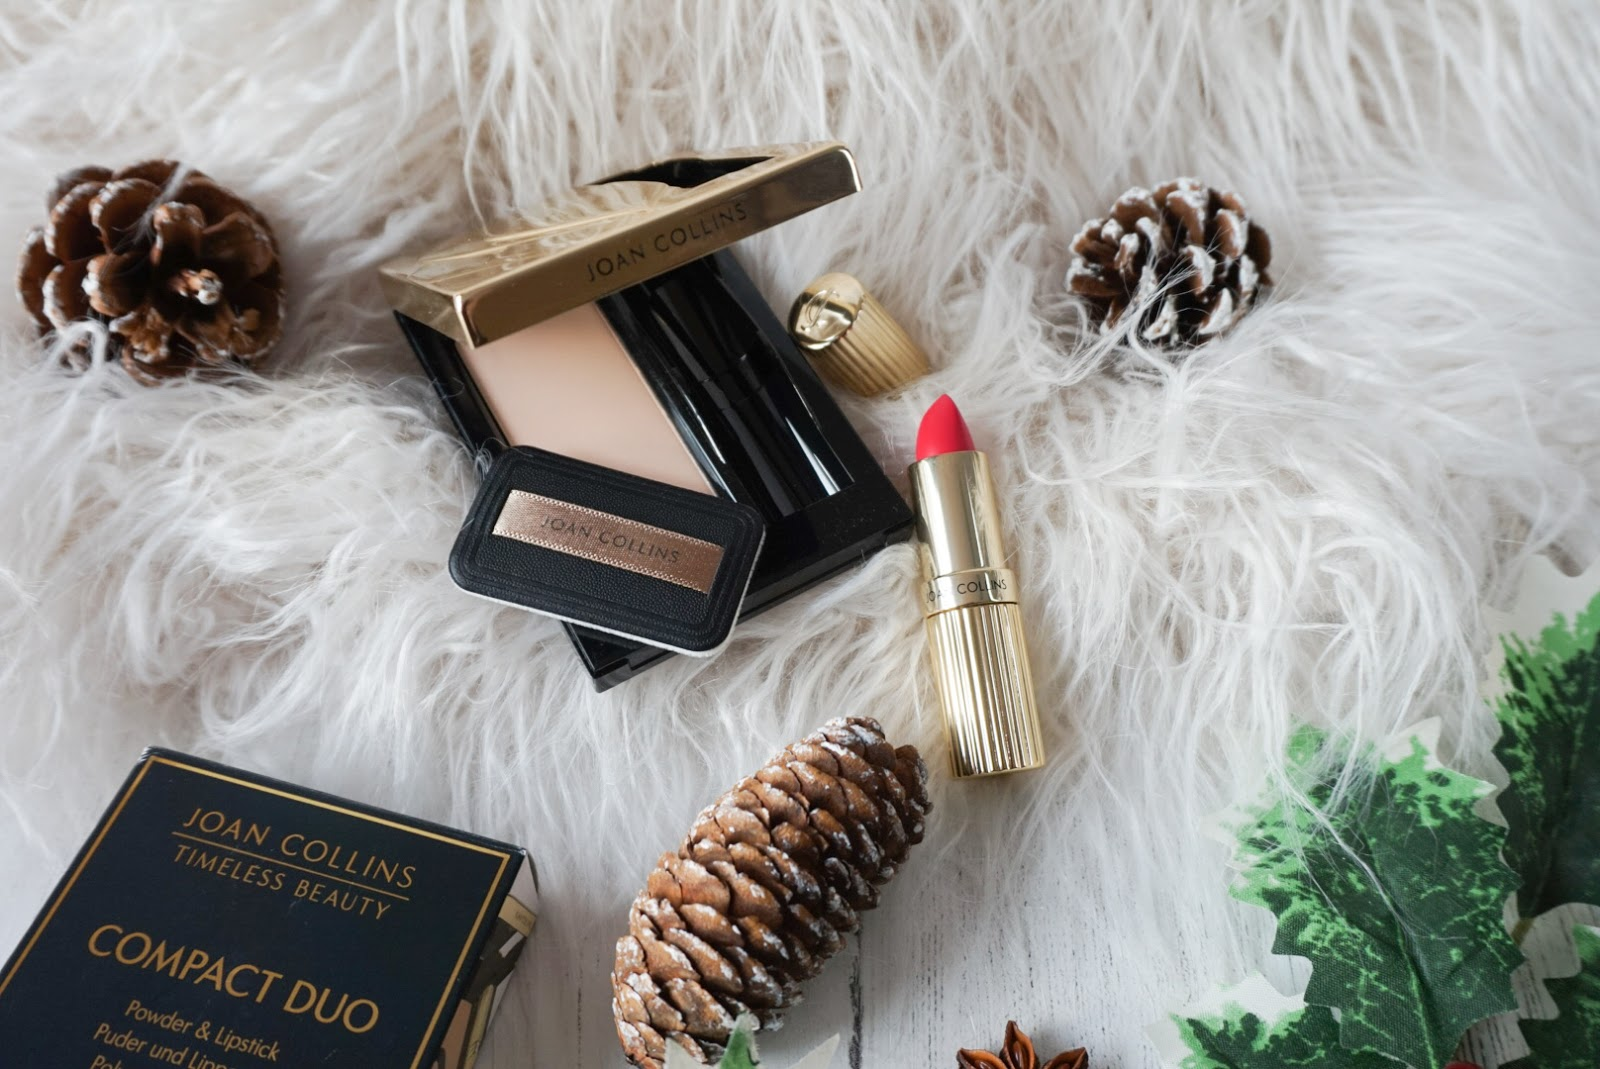 Christmas | Beauty Stocking Fillers Under £25 Joan Collins Tineless Beauty Compact